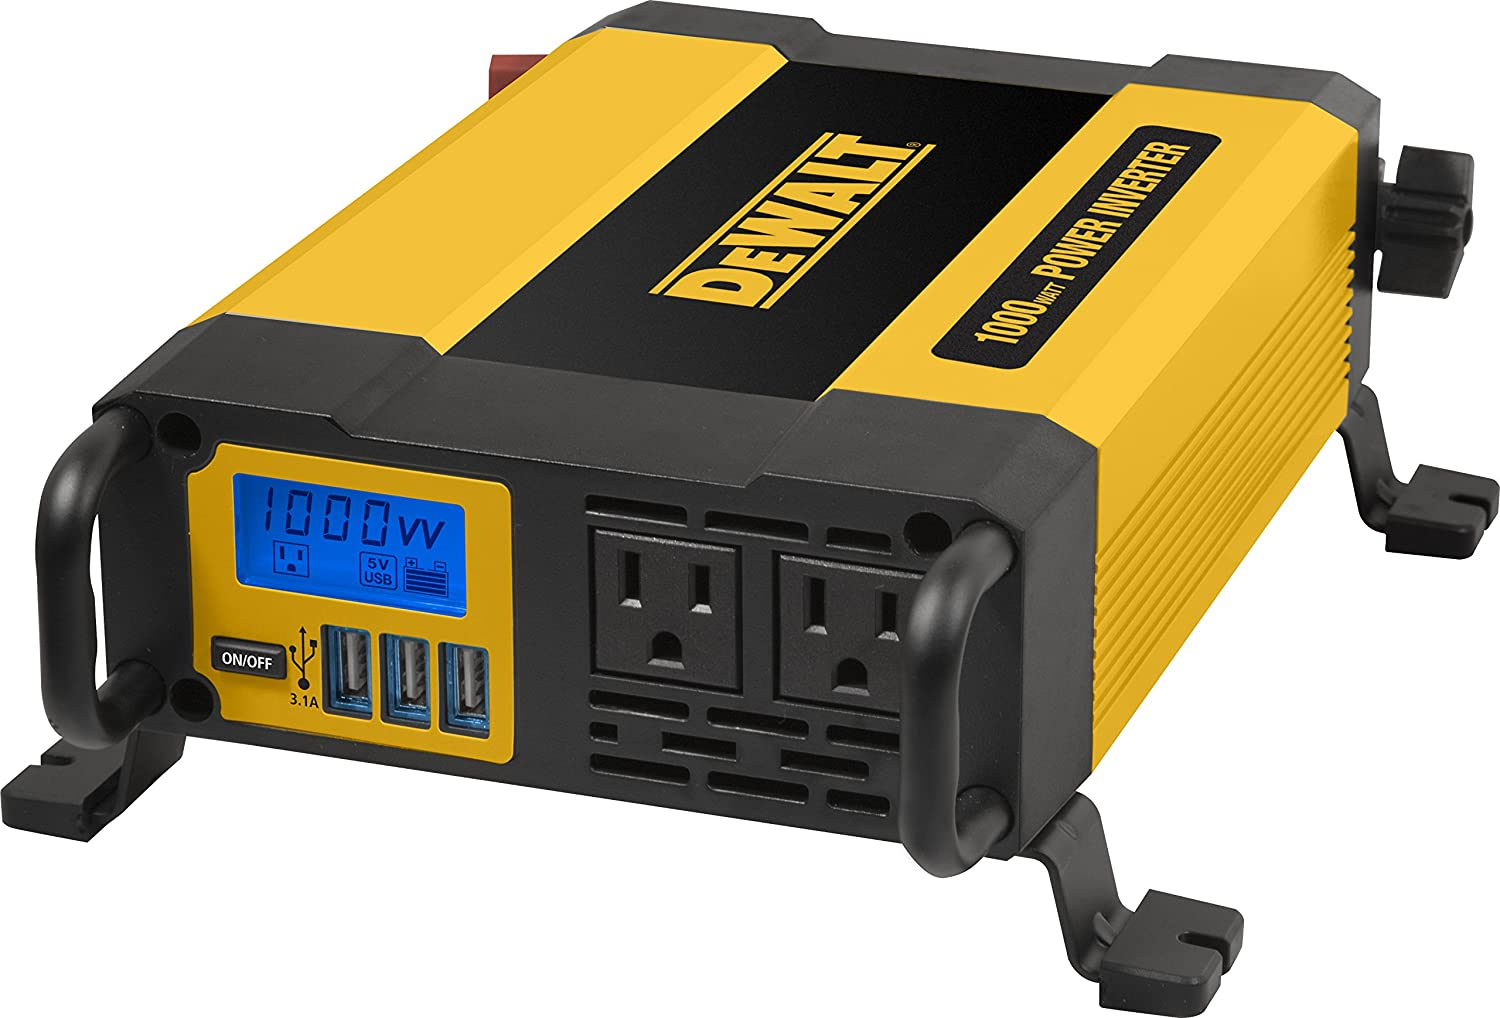 Battery Clamps DEWALT DXAEPI1000 Power Inverter 1000W Car Converter with LCD Display Dual 120V AC Outlets 3.1A USB Ports